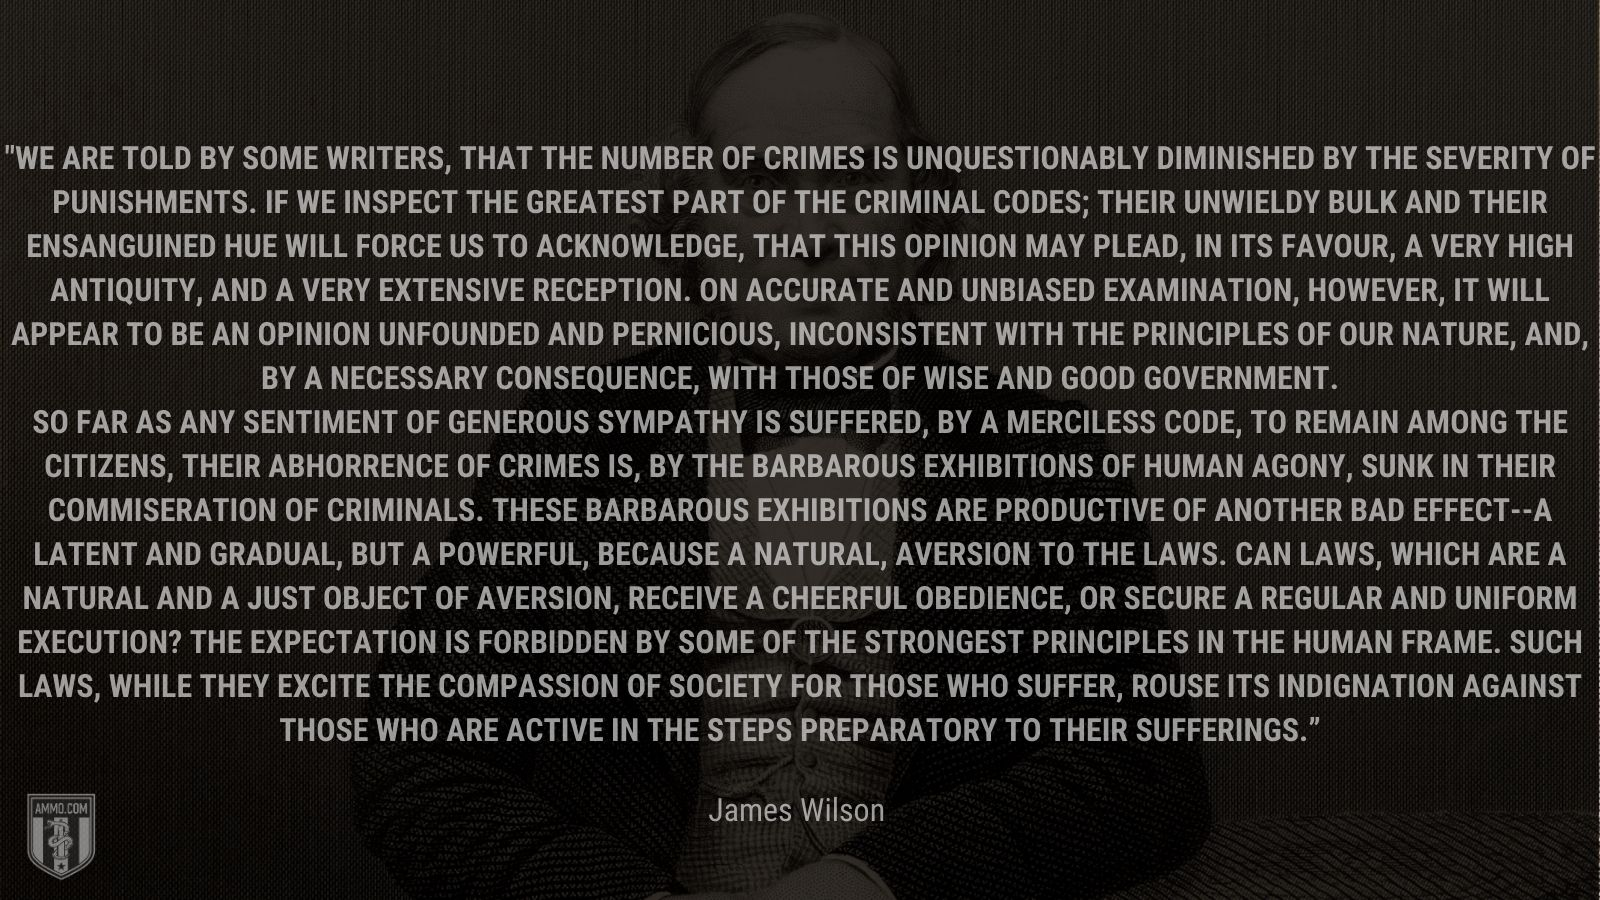 """""""We are told by some writers, that the number of crimes is unquestionably diminished by the severity of punishments. If we inspect the greatest part of the criminal codes; their unwieldy bulk and their ensanguined hue will force us to acknowledge, that this opinion may plead, in its favour, a very high antiquity, and a very extensive reception. On accurate and unbiased examination, however, it will appear to be an opinion unfounded and pernicious, inconsistent with the principles of our nature, and, by a necessary consequence, with those of wise and good government. So far as any sentiment of generous sympathy is suffered, by a merciless code, to remain among the citizens, their abhorrence of crimes is, by the barbarous exhibitions of human agony, sunk in their commiseration of criminals. These barbarous exhibitions are productive of another bad effect--a latent and gradual, but a powerful, because a natural, aversion to the laws. Can laws, which are a natural and a just object of aversion, receive a cheerful obedience, or secure a regular and uniform execution? The expectation is forbidden by some of the strongest principles in the human frame. Such laws, while they excite the compassion of society for those who suffer, rouse its indignation against those who are active in the steps preparatory to their sufferings."""" - James Wilson"""